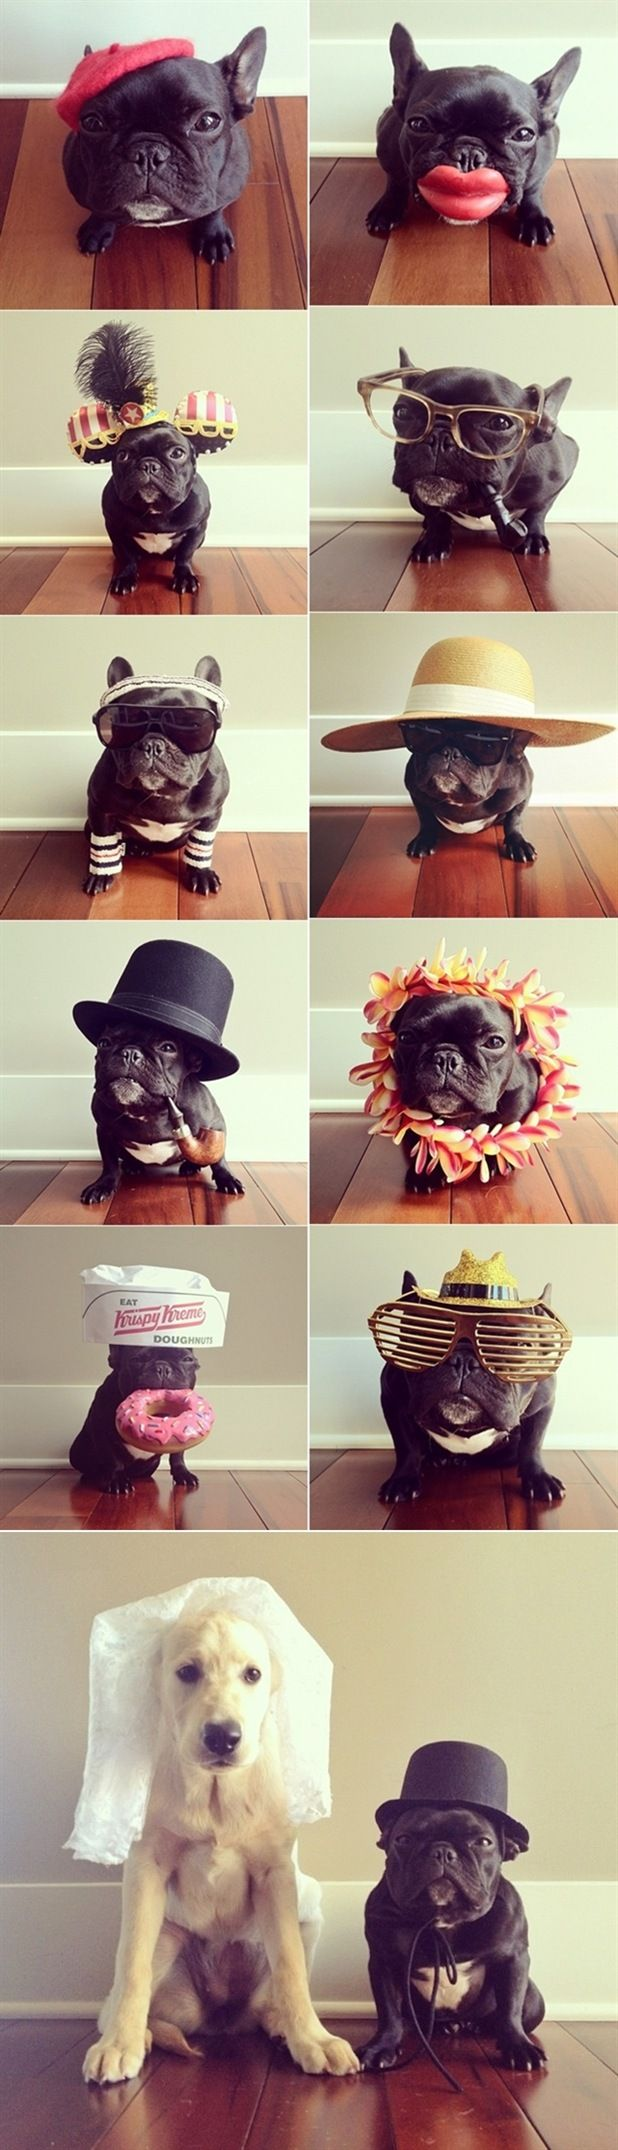 :) This makes me want a French bull dog so bad!